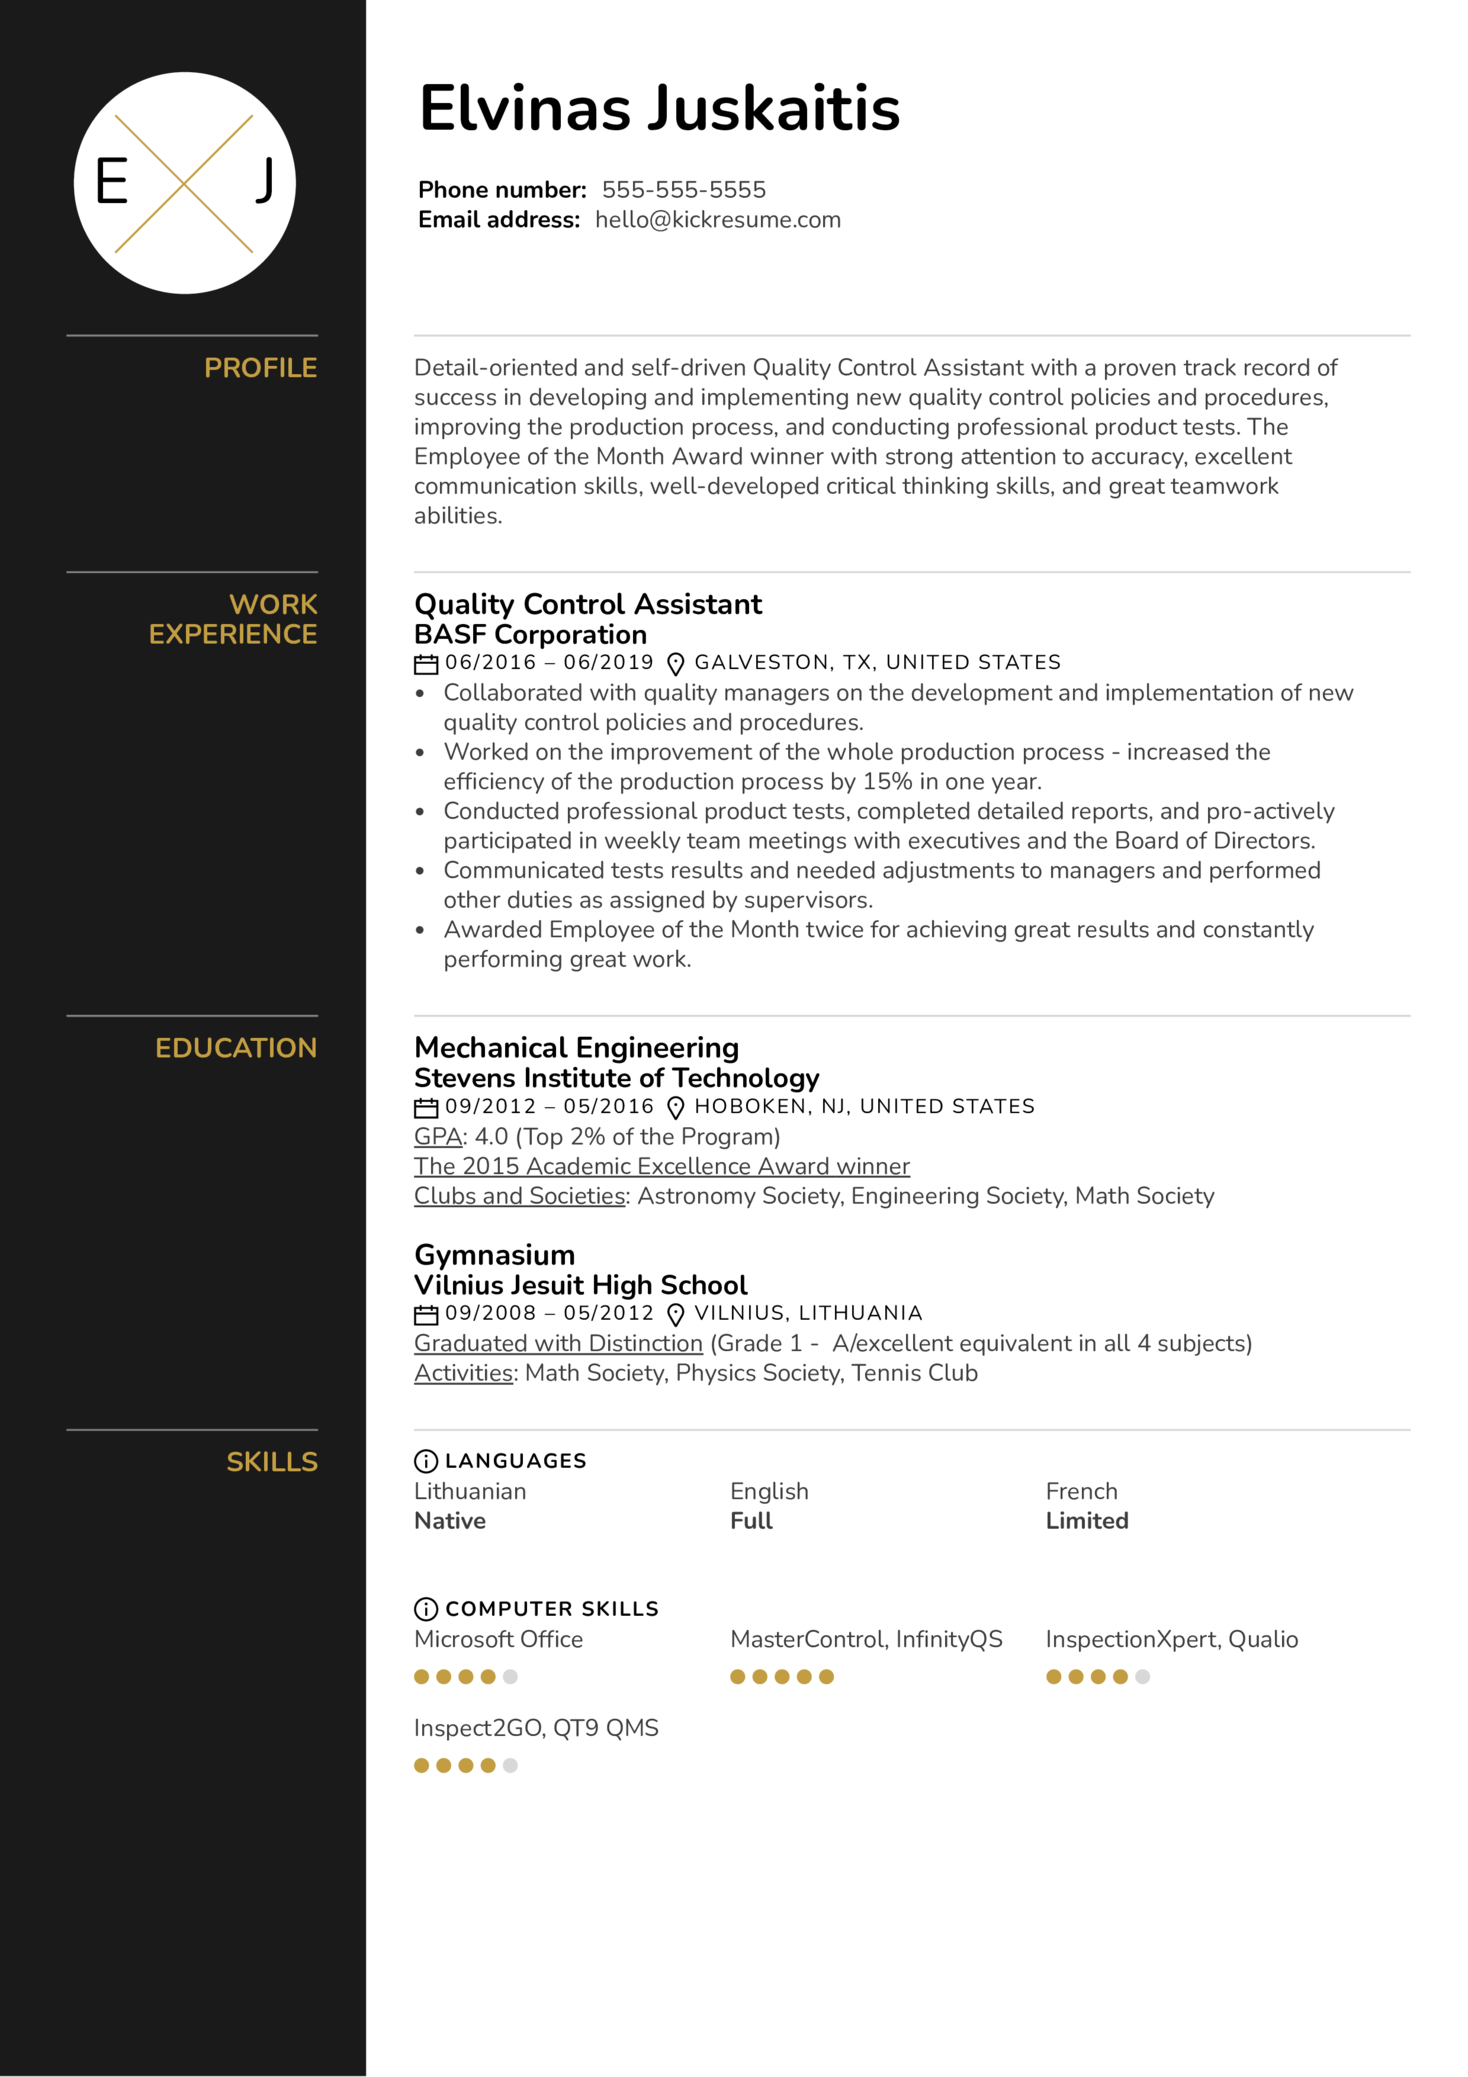 Quality Control Assistant Resume Sample (Teil 1)